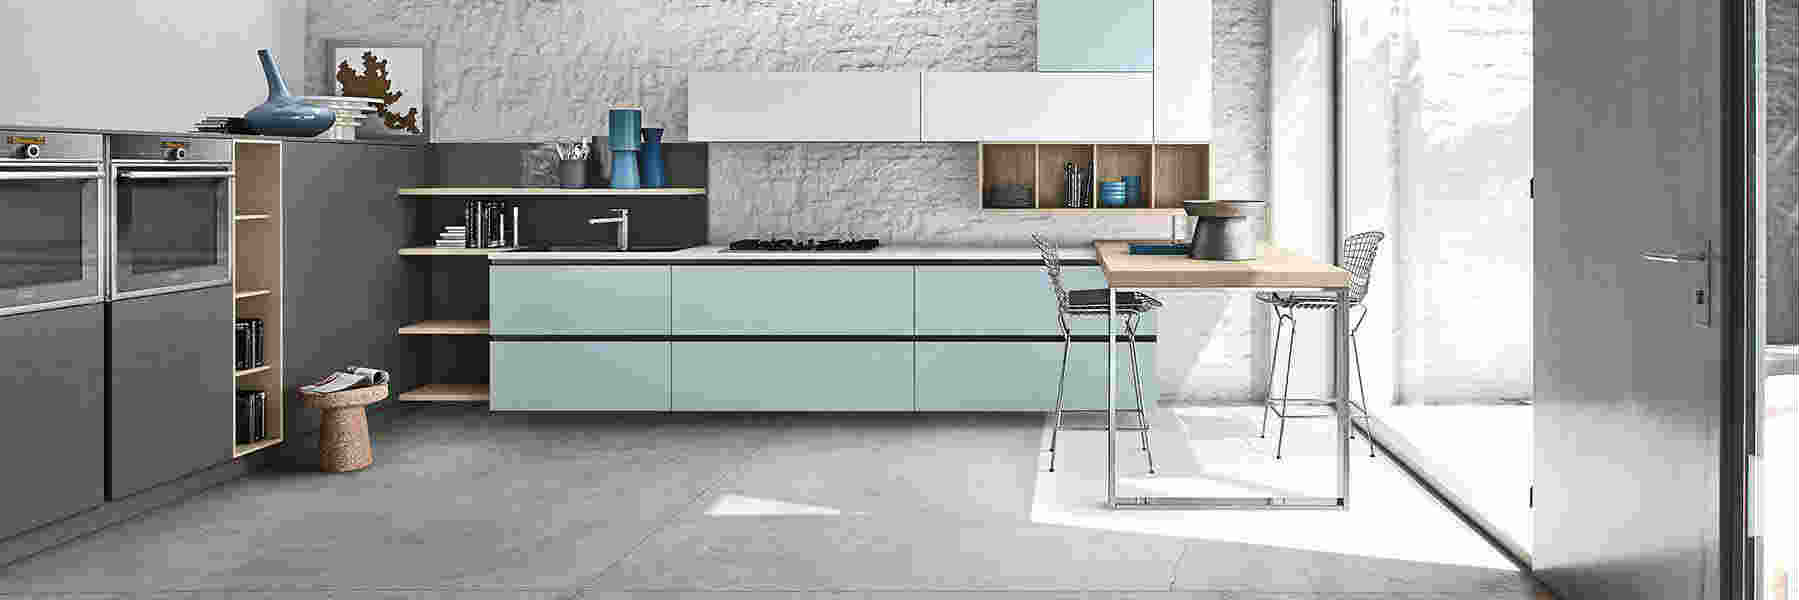 Kitchens Drummoyne Luxury Modern Kitchens Designs European Wardrobes Sydney